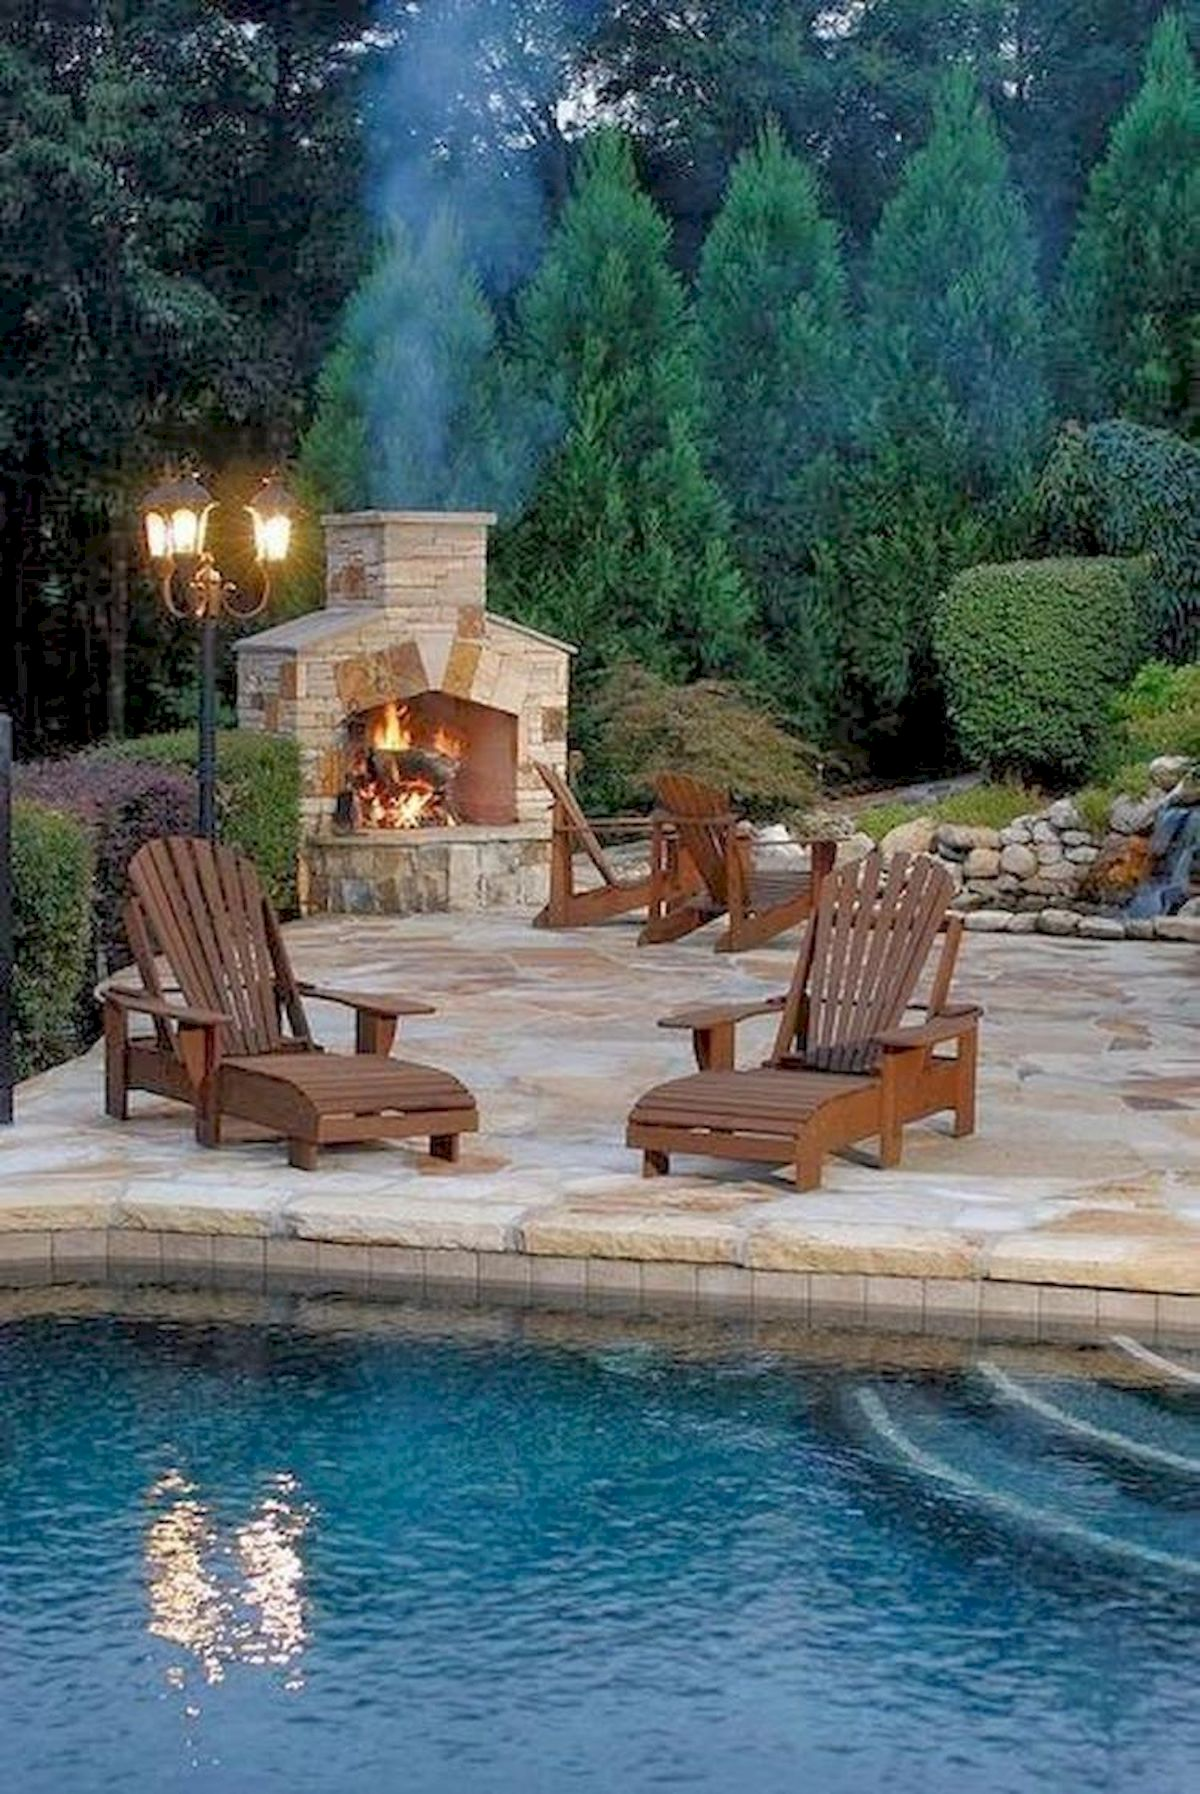 60 Awesome Backyard Privacy Design and Decor Ideas (25)